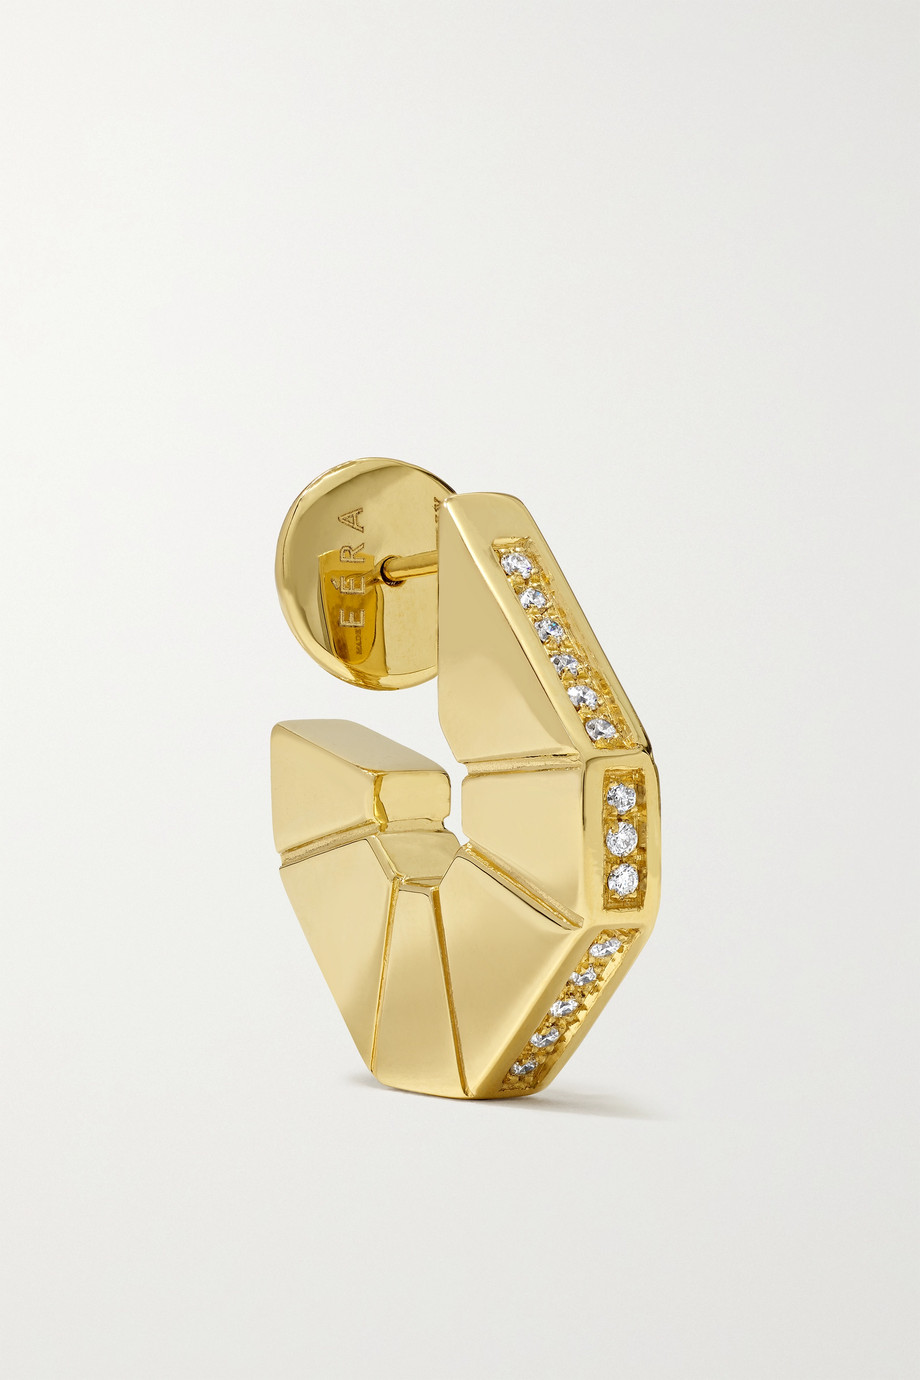 EÉRA Carey 18-karat gold diamond earring